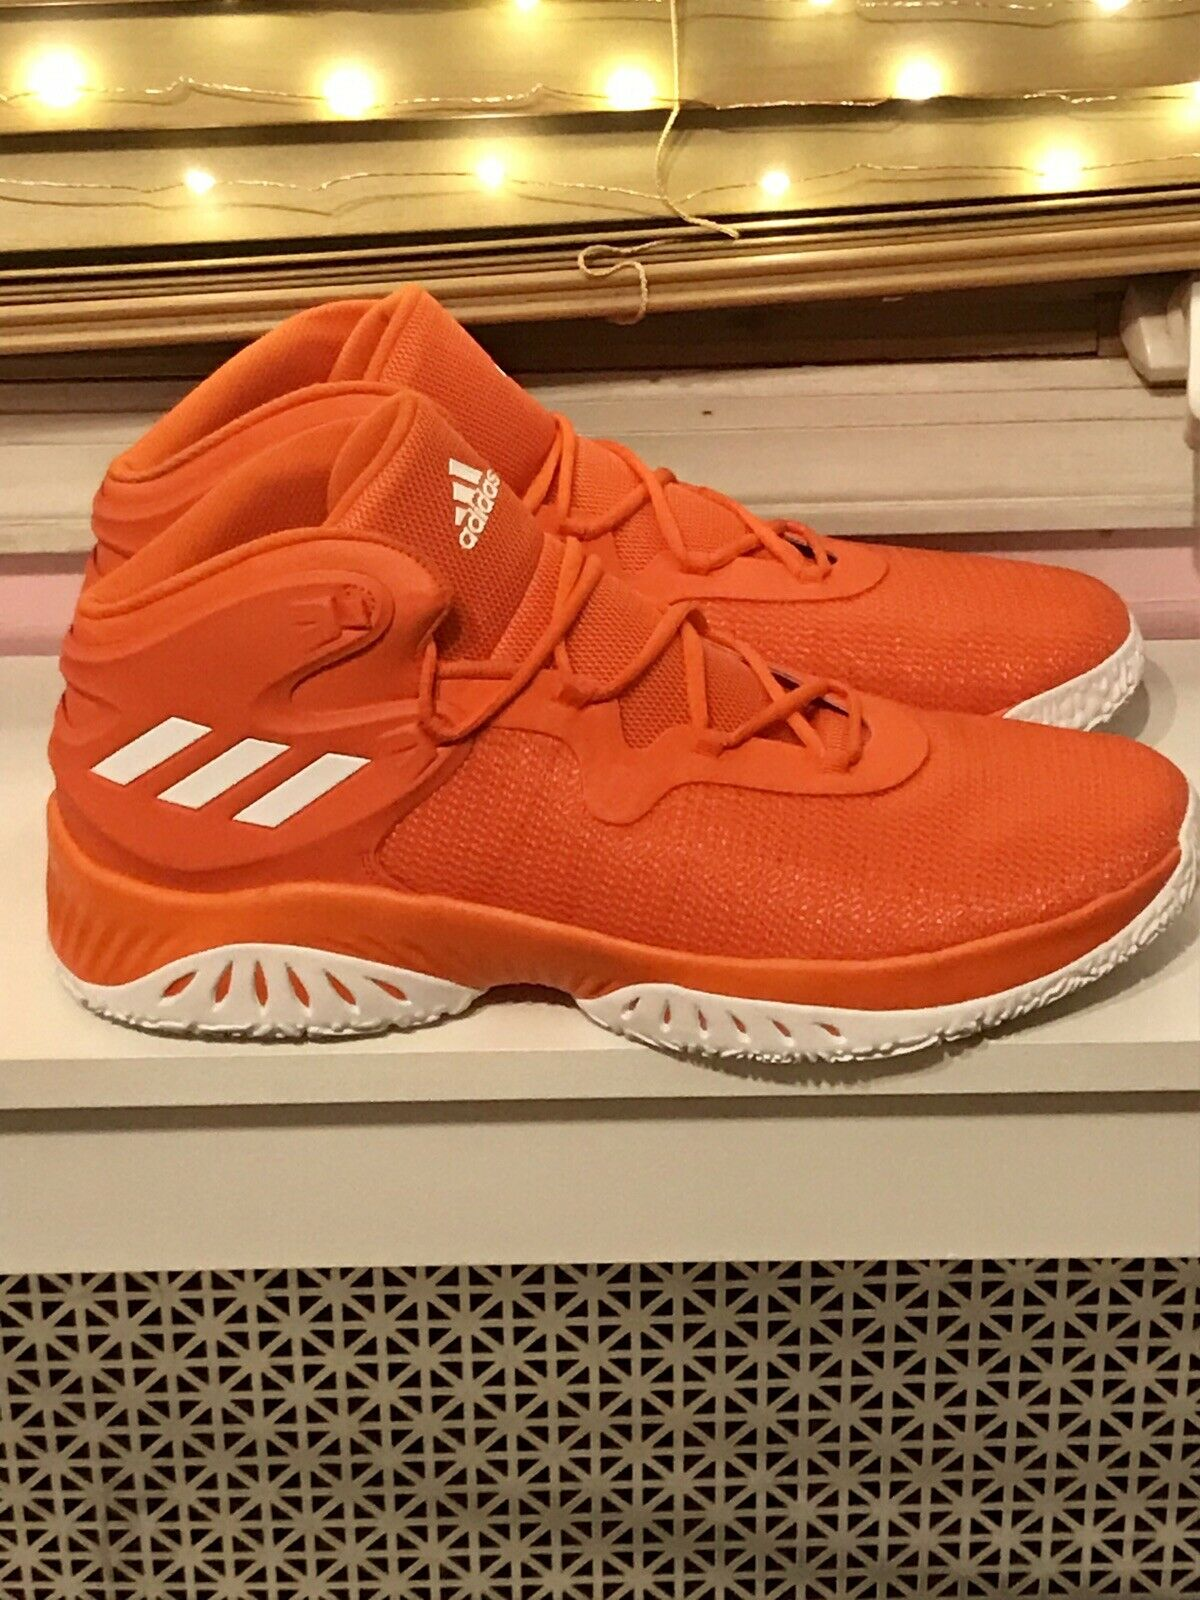 NEW Adidas orange   White Crazy Bounce Basketball shoes Men's Size 17 Sneakers